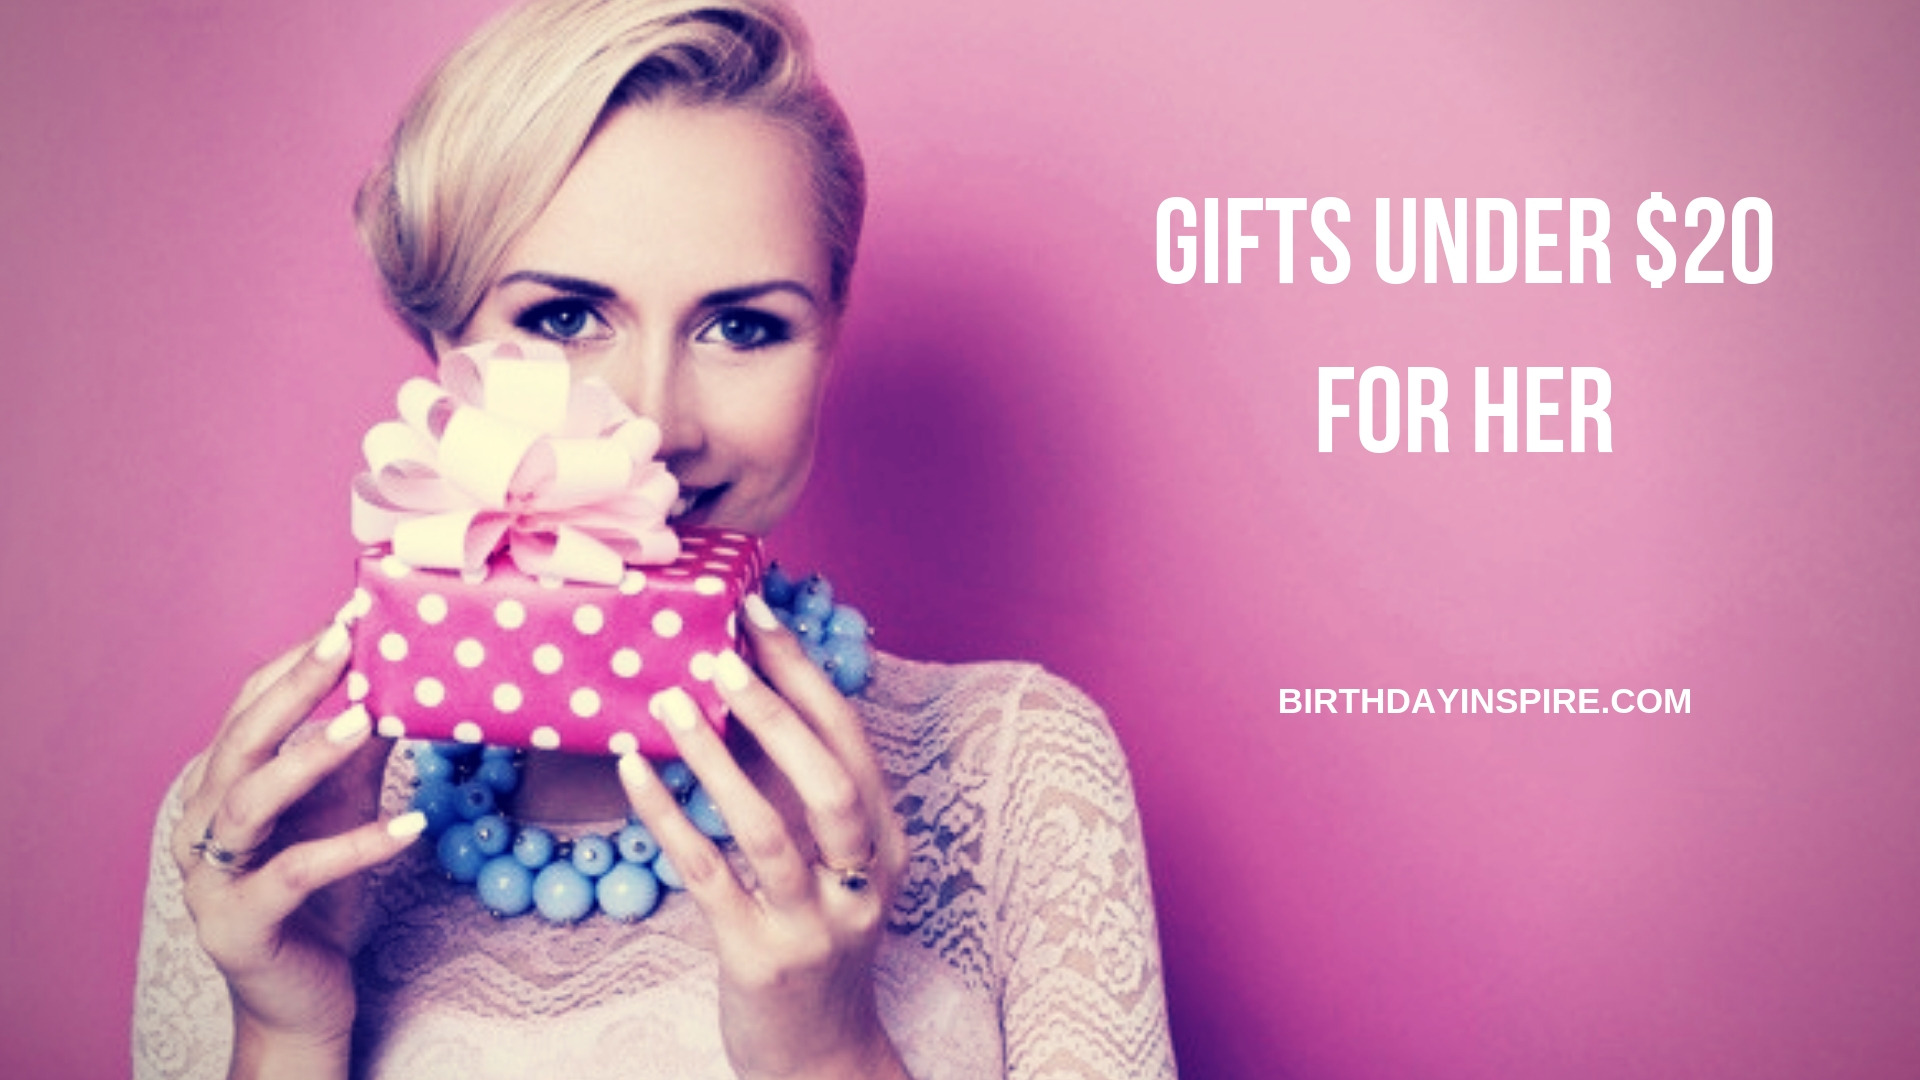 GIFTS UNDER $20 FOR HER